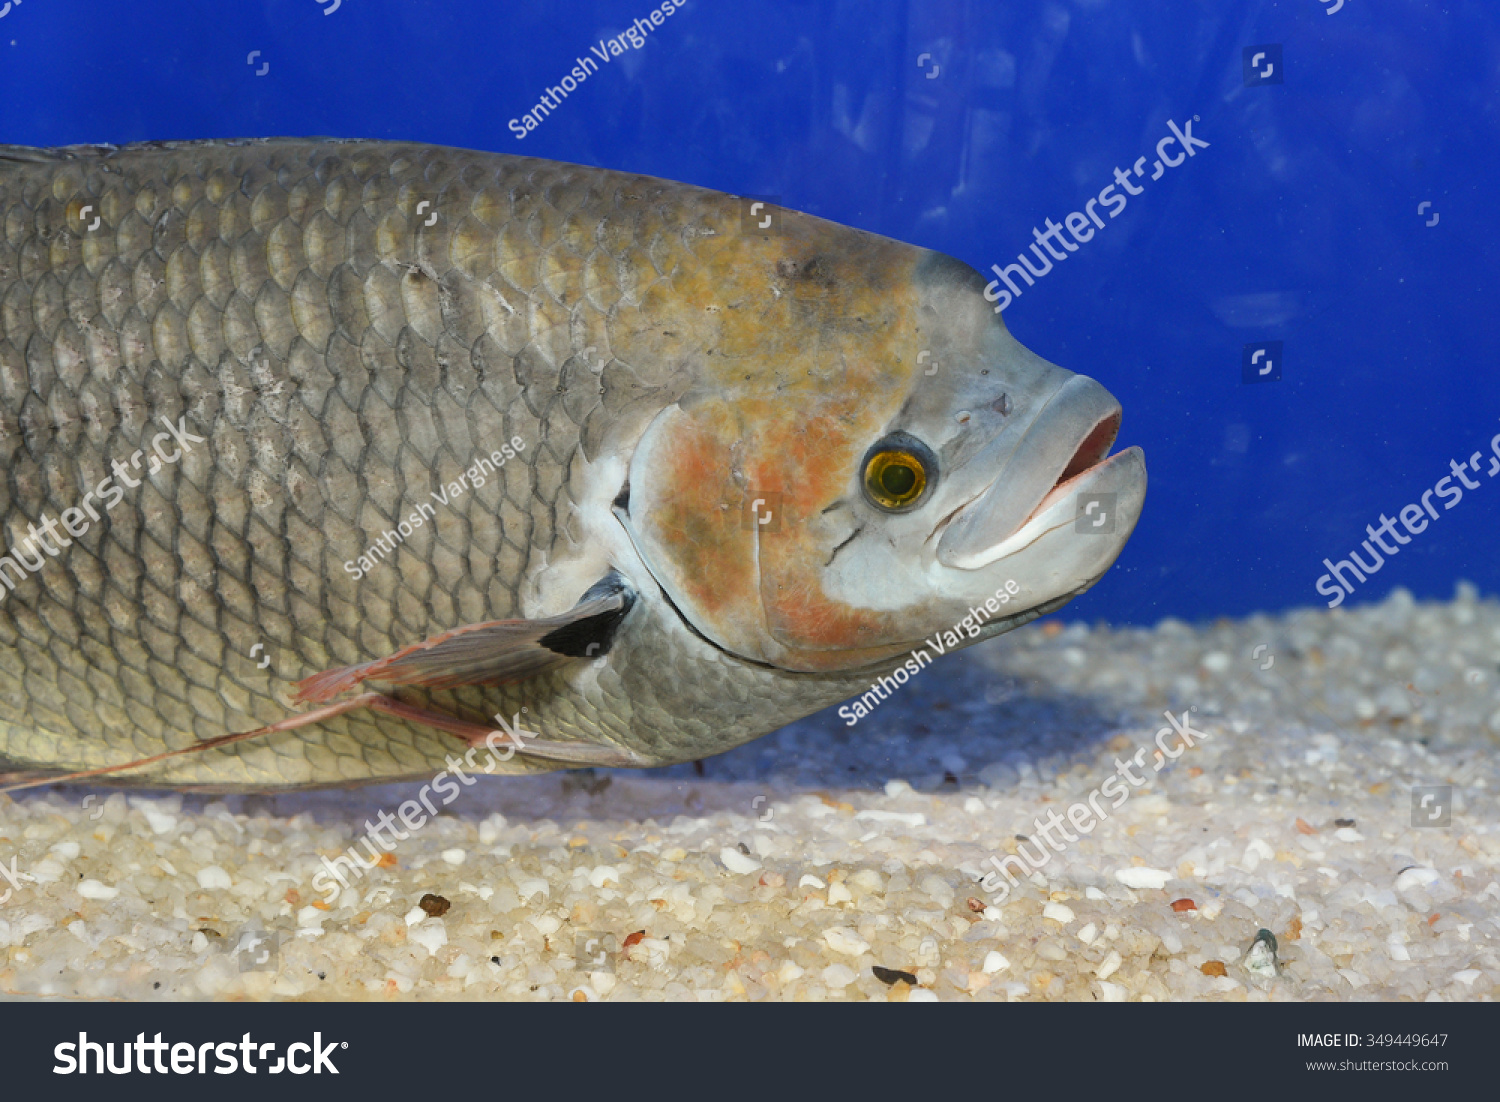 Freshwater fish kerala - Giant Gourami Fish In A Fresh Water Aquarium With Dark Background In Kerala India